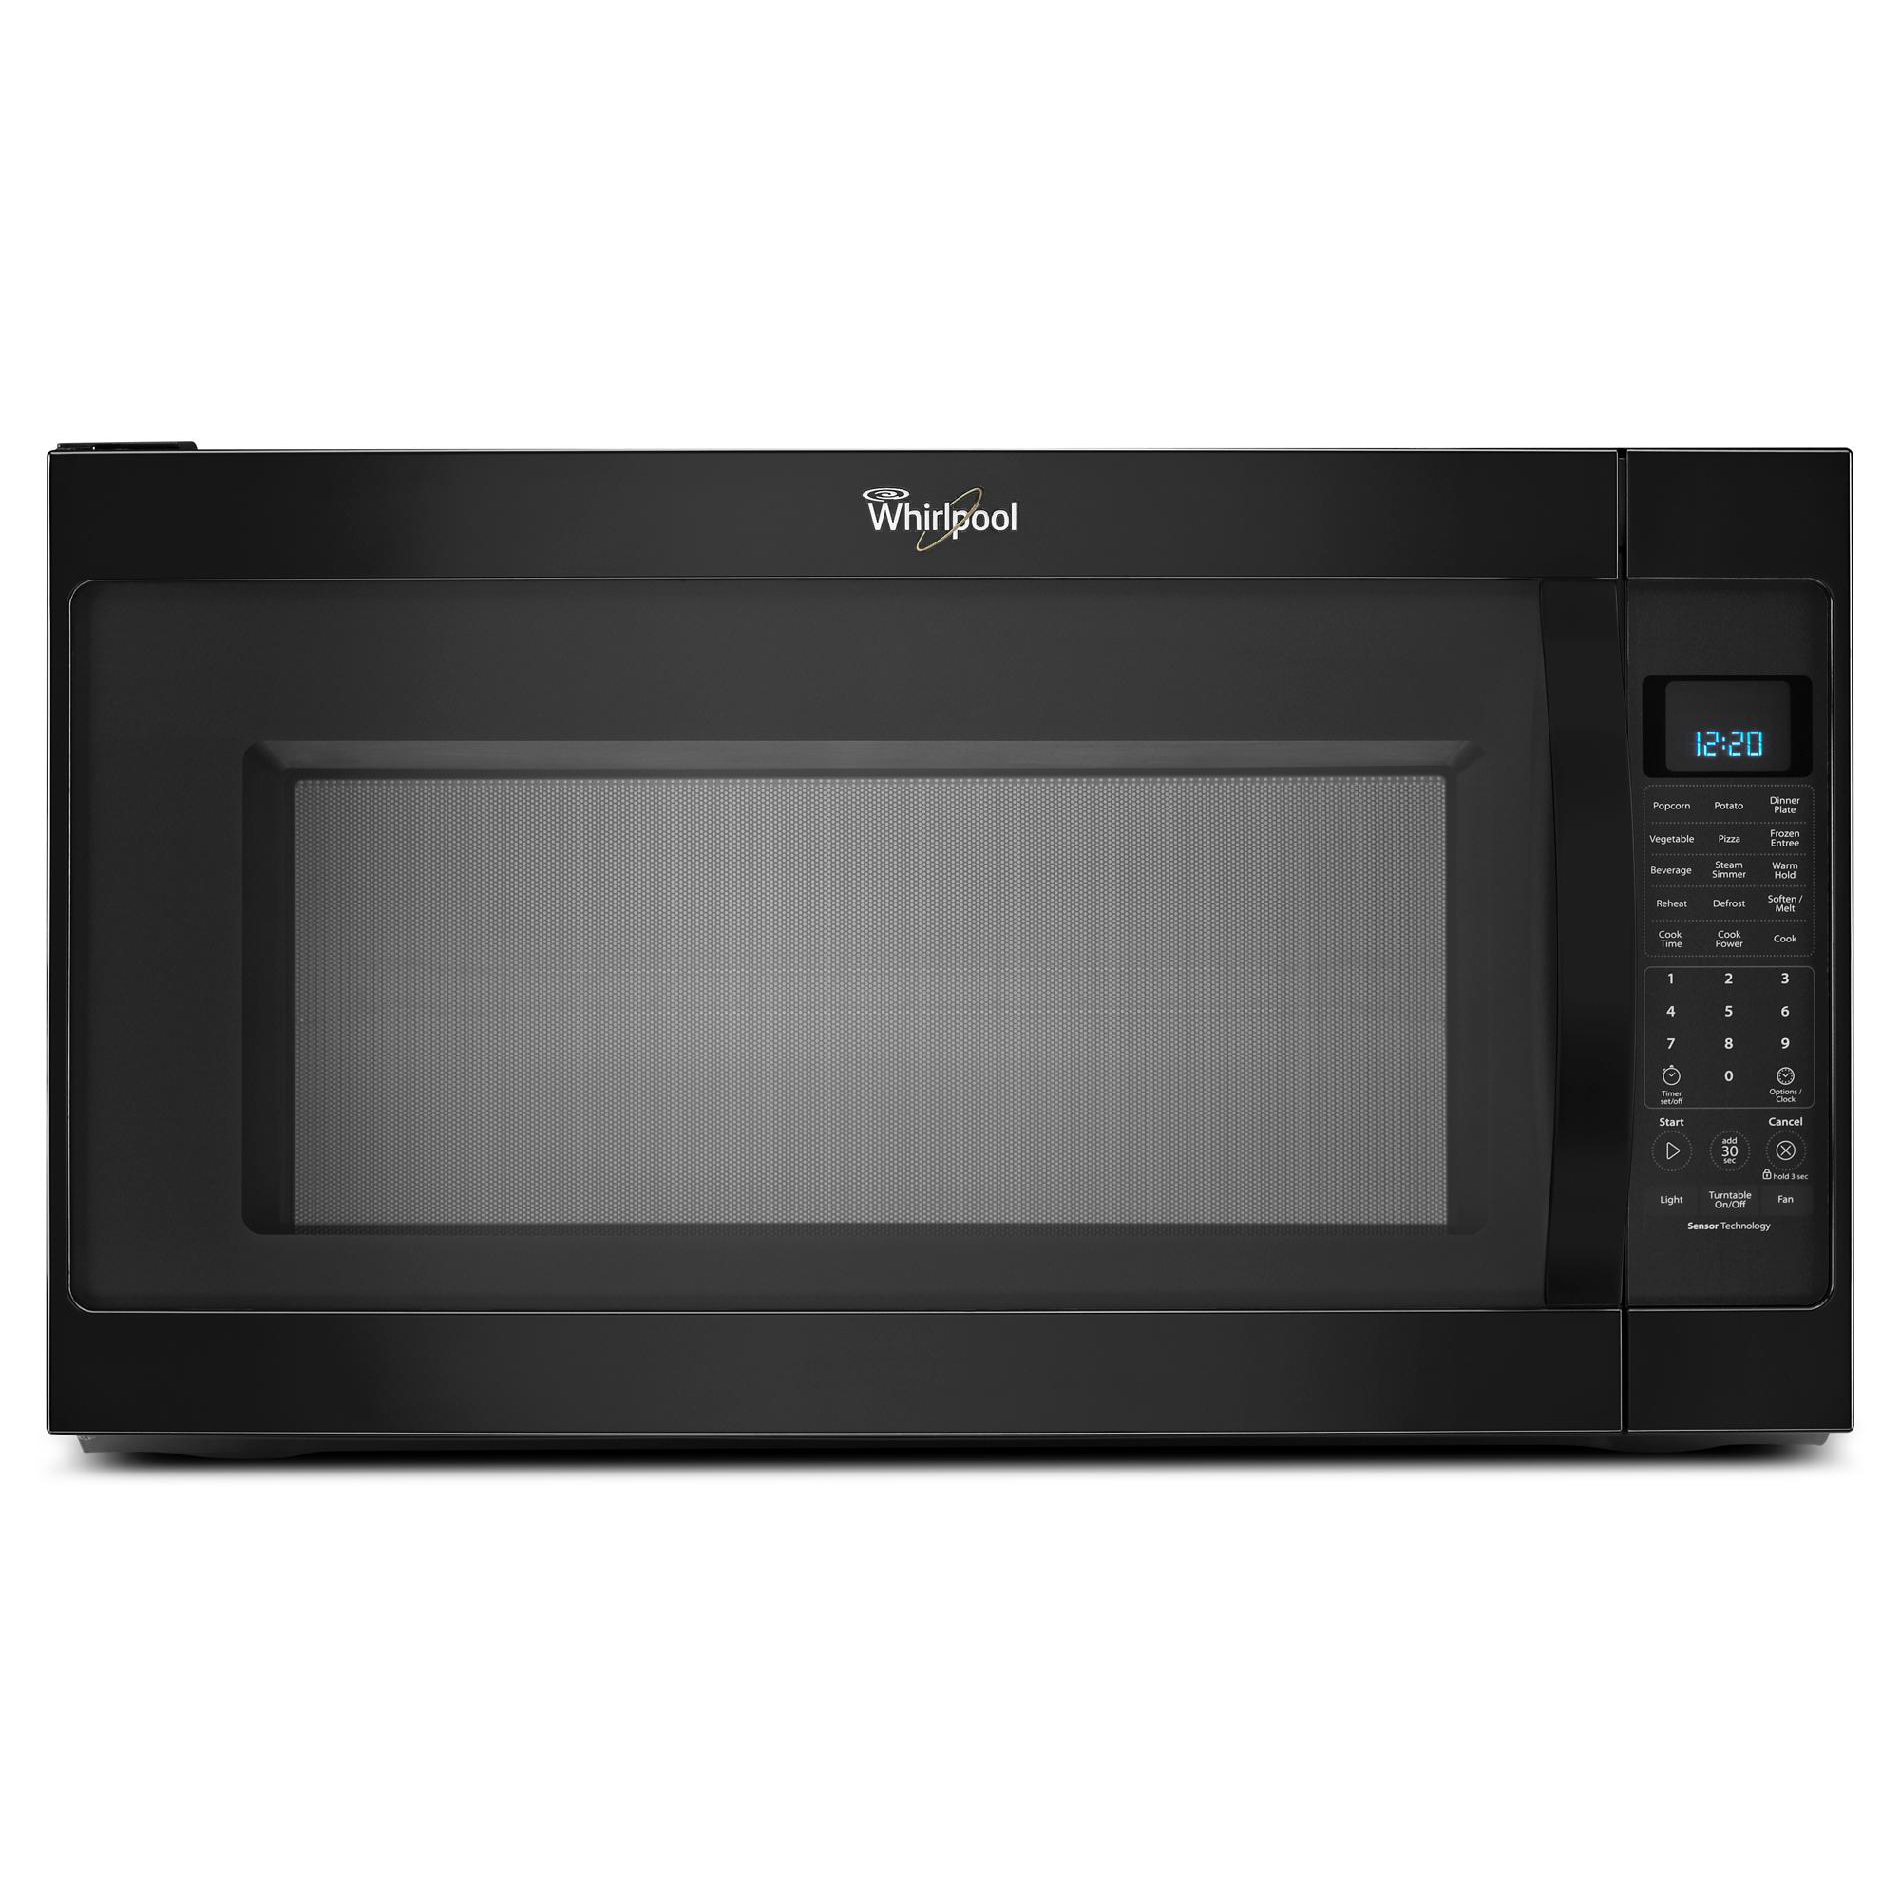 Whirlpool 2.0 Cu. Ft. Over-range Microwave Withcleanrelease Black Wmh53520cb